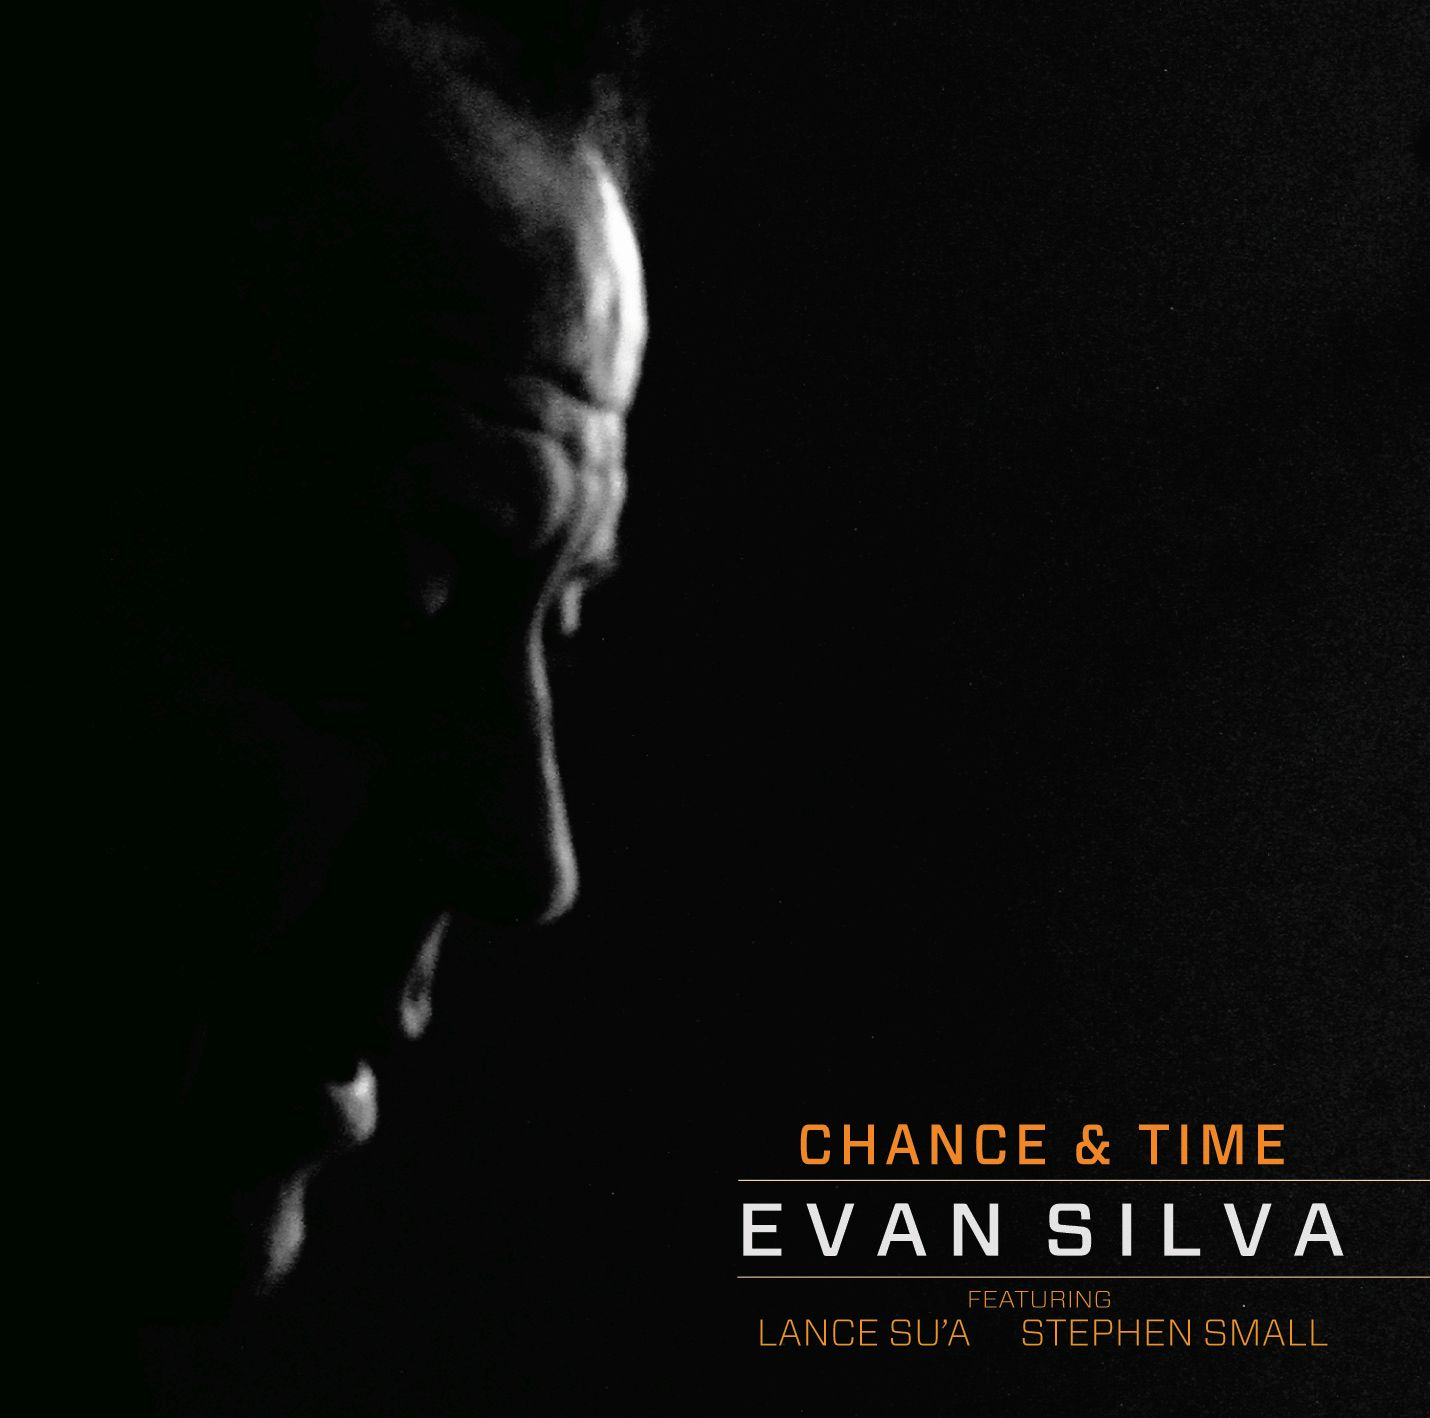 Evan Silva - Chance & Time